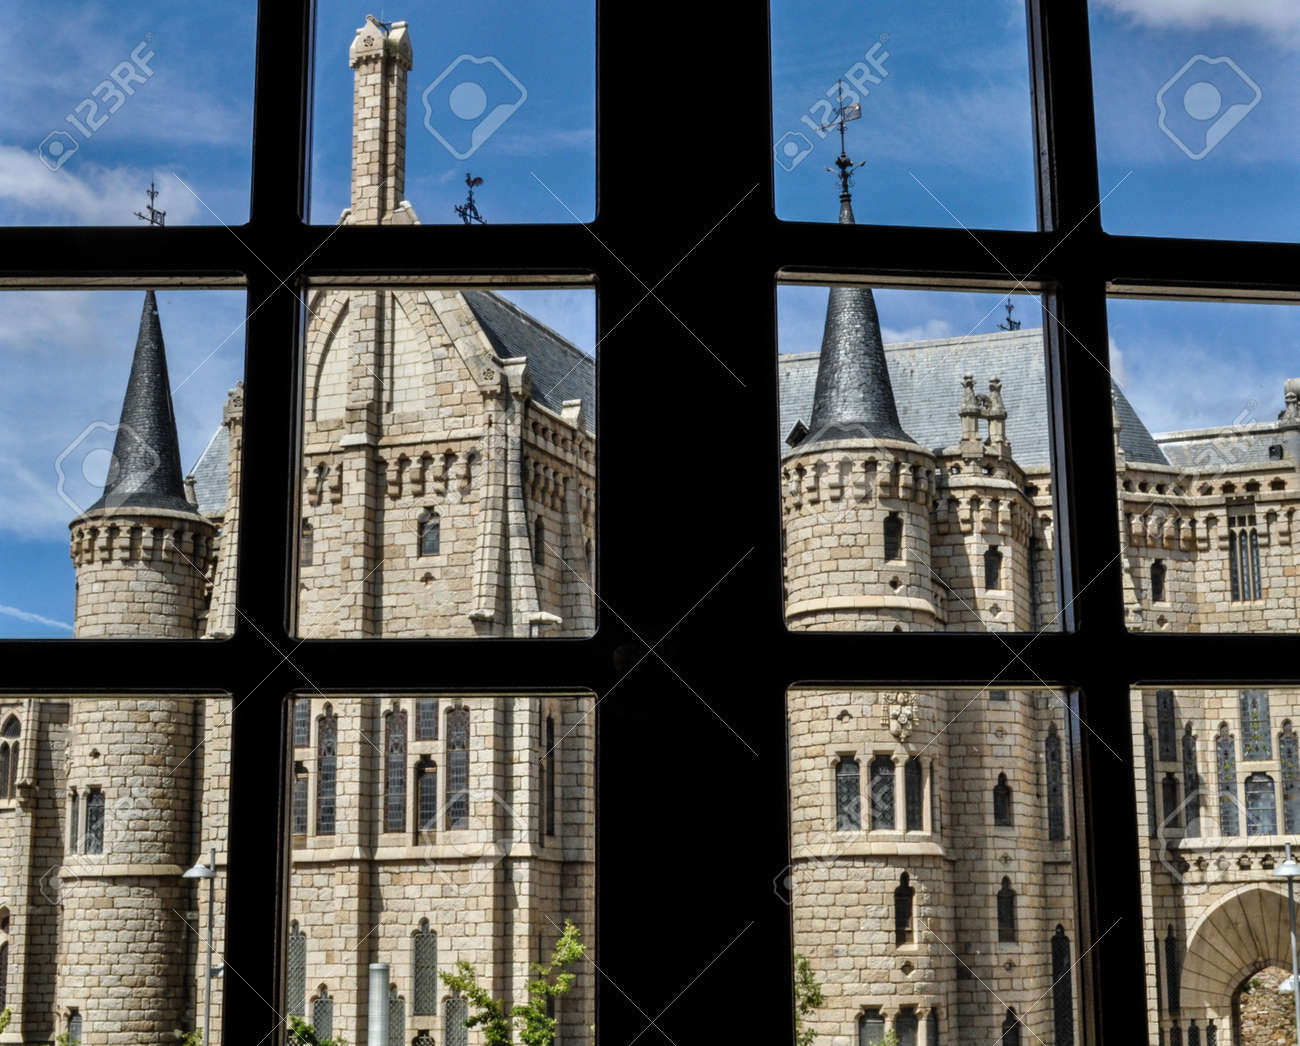 The Episcopal Palace Of Astorga Is A Building Designed By Spanish